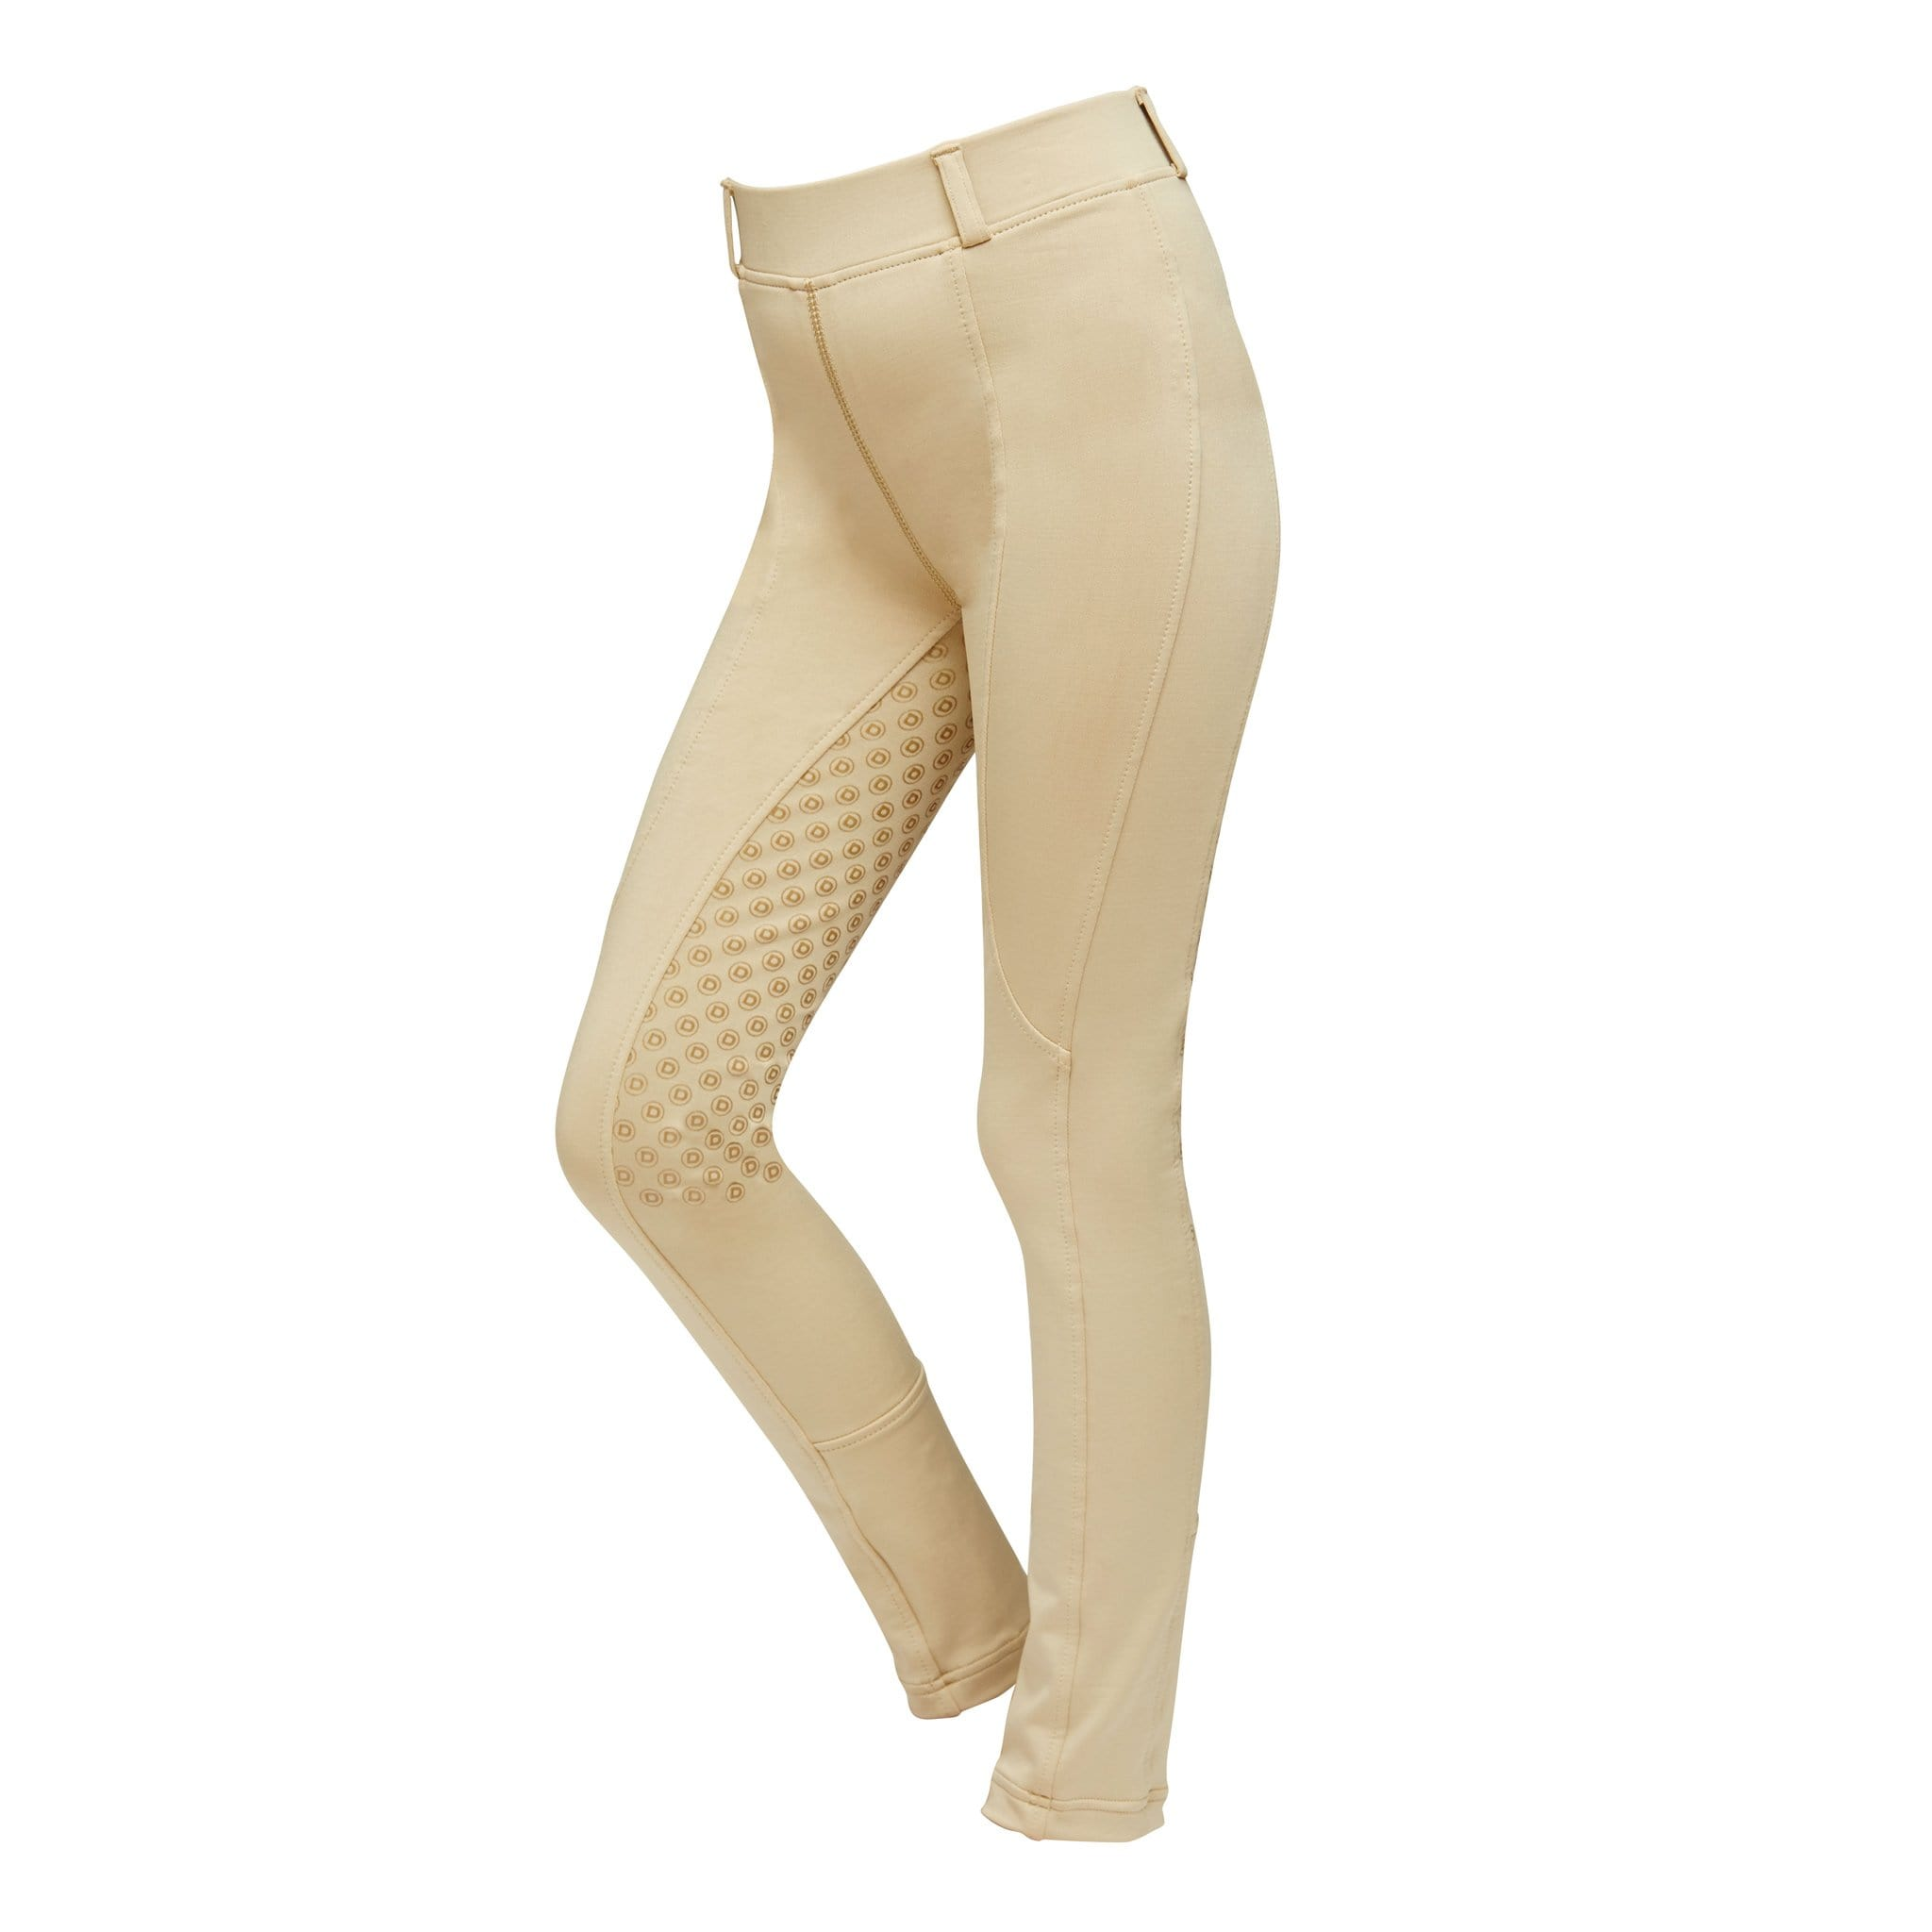 Dublin Children's Performance Cool-It Gel Silicone Full Seat Riding Tights 800730 Beige Front.